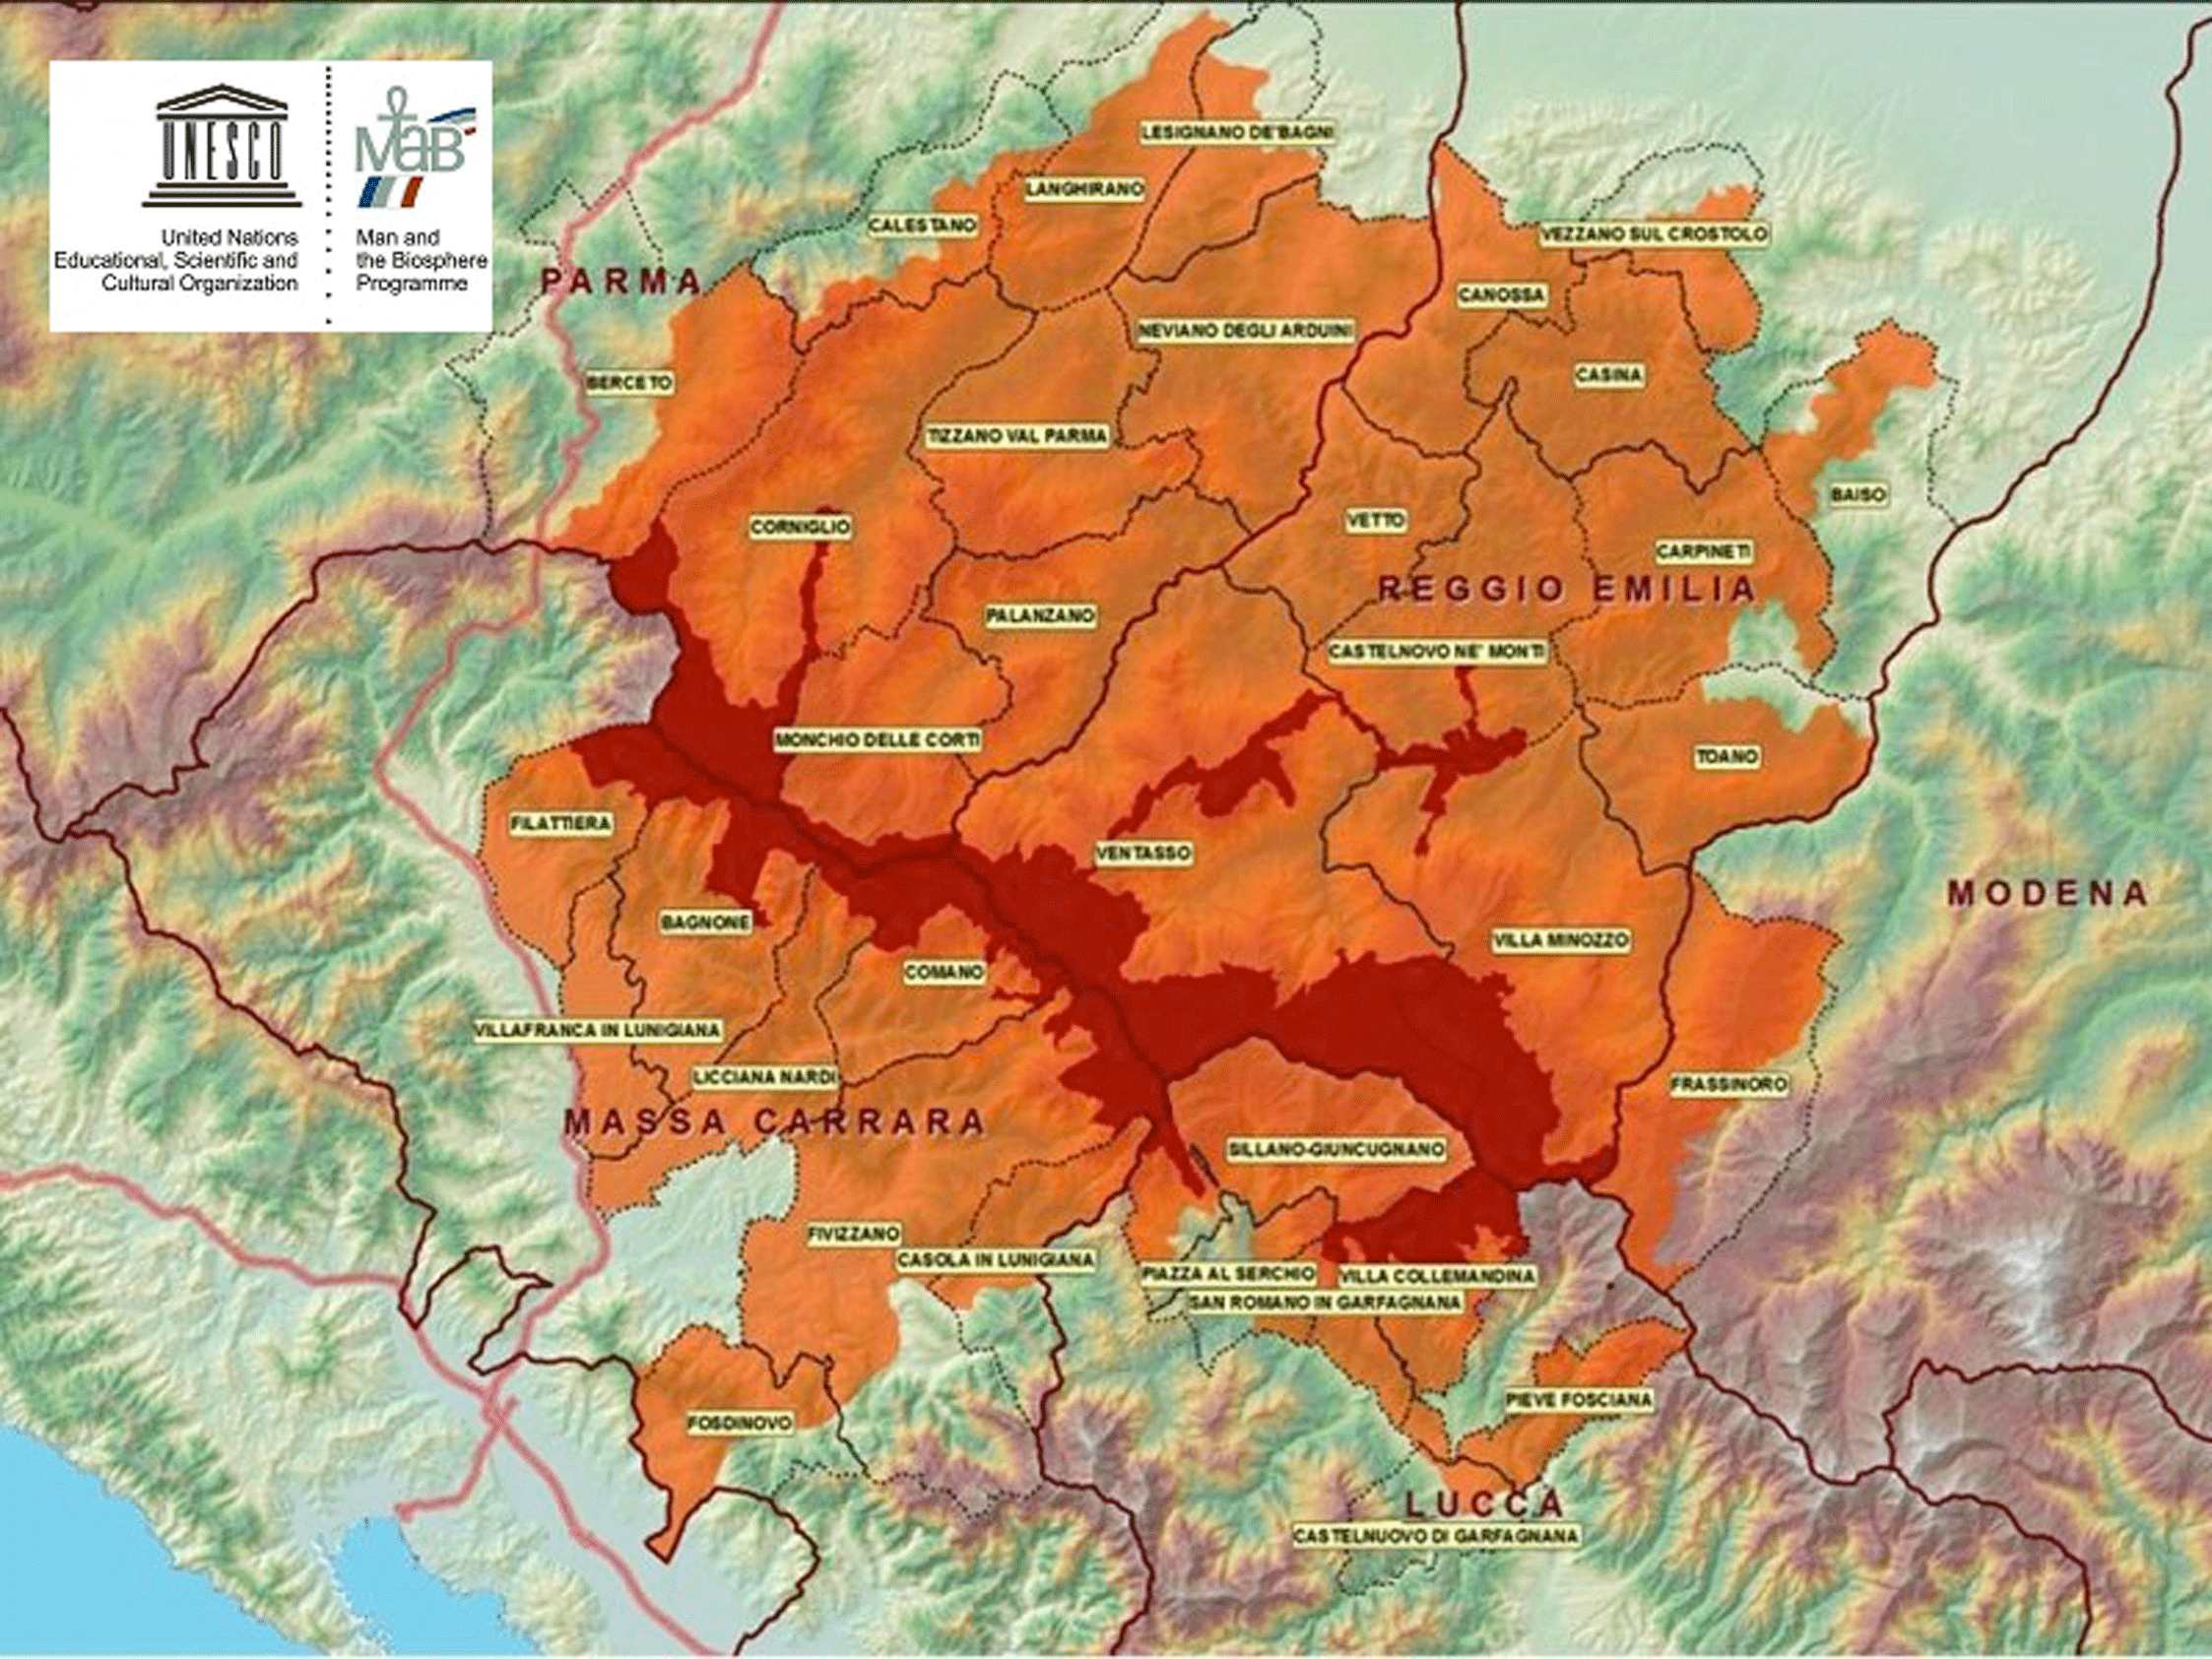 The enlargement to the Modena Apennines of the MaB Unesco Reserve